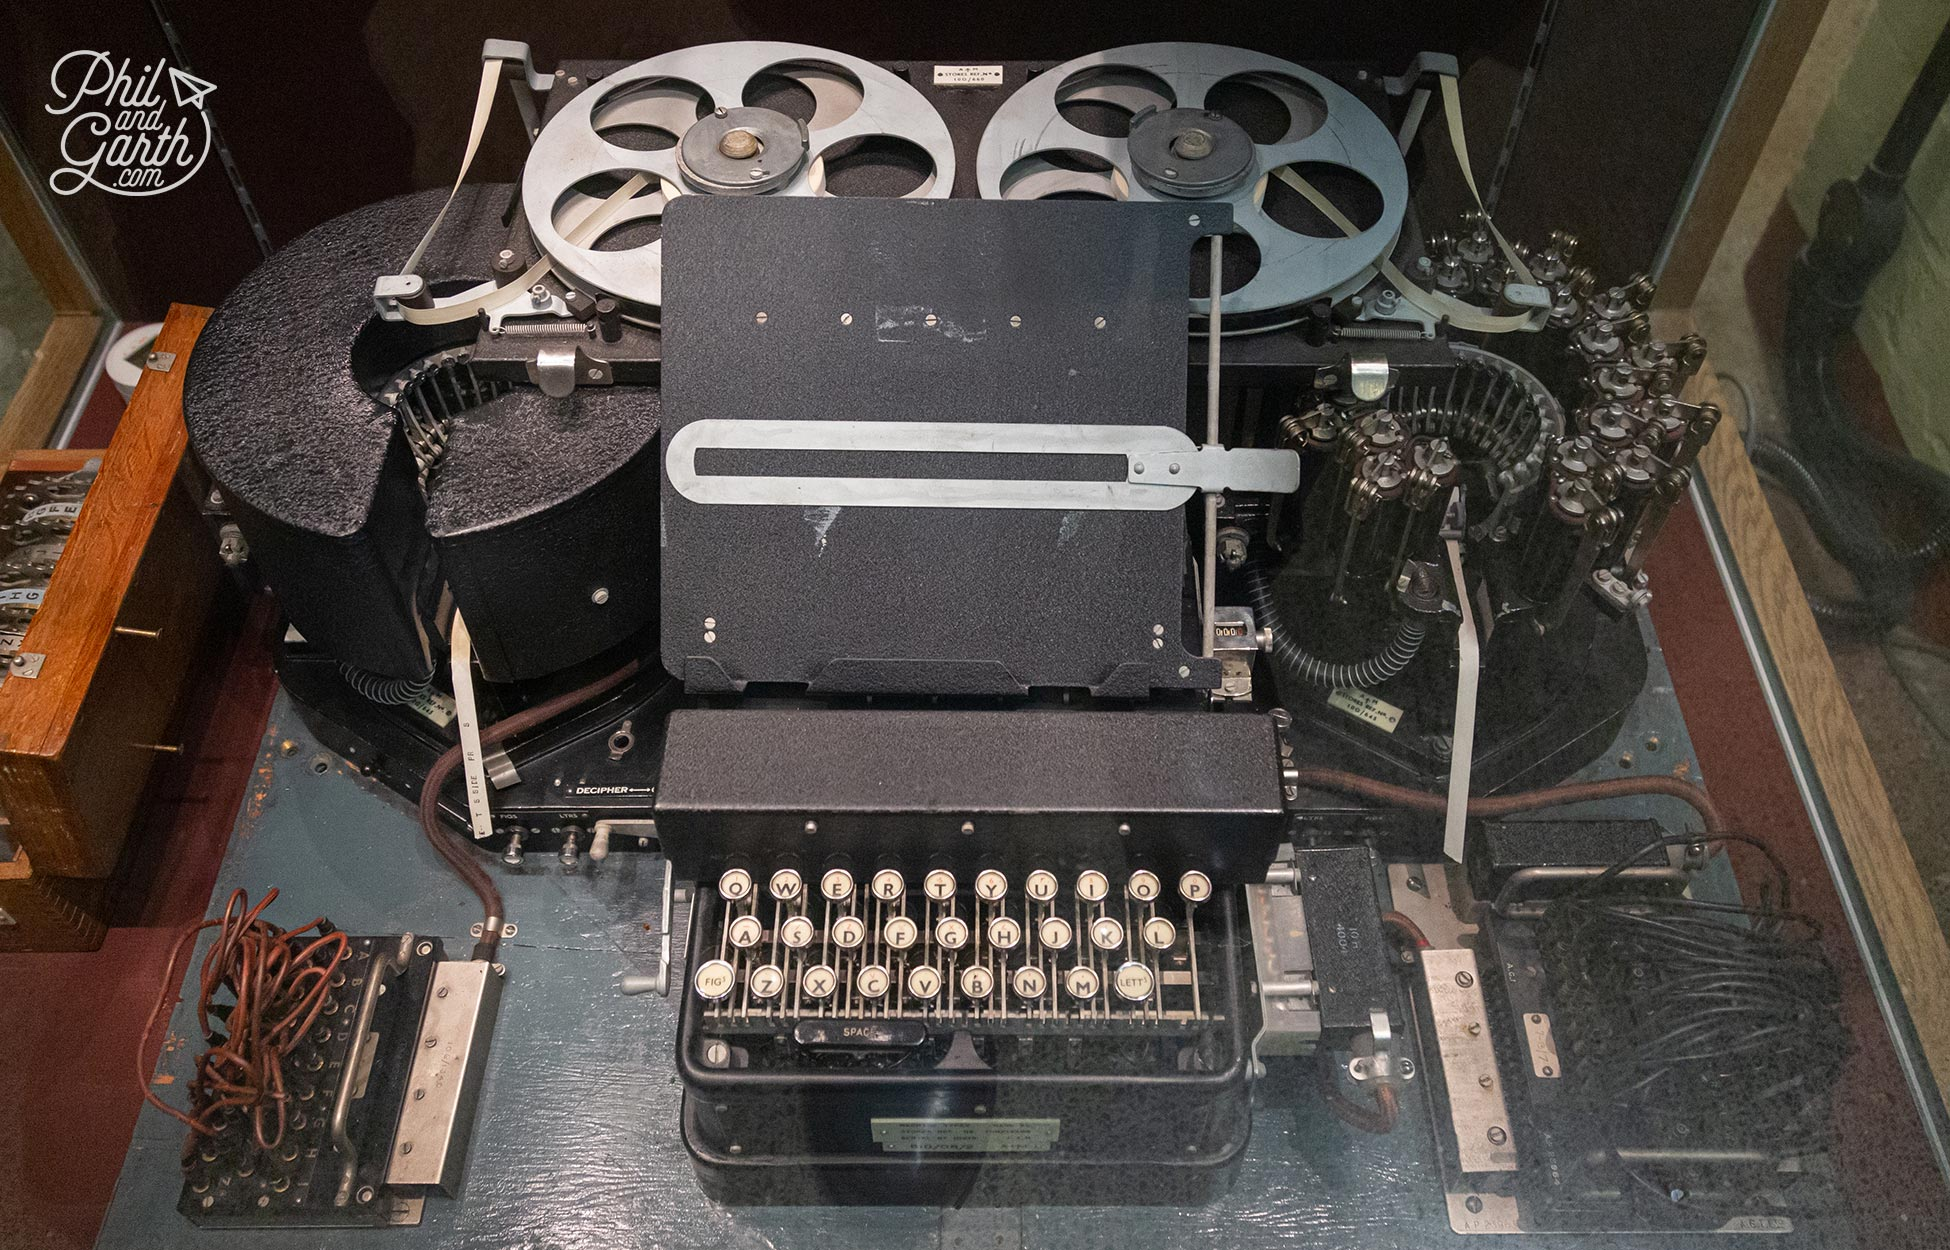 An original Typex machine used to decipher messages